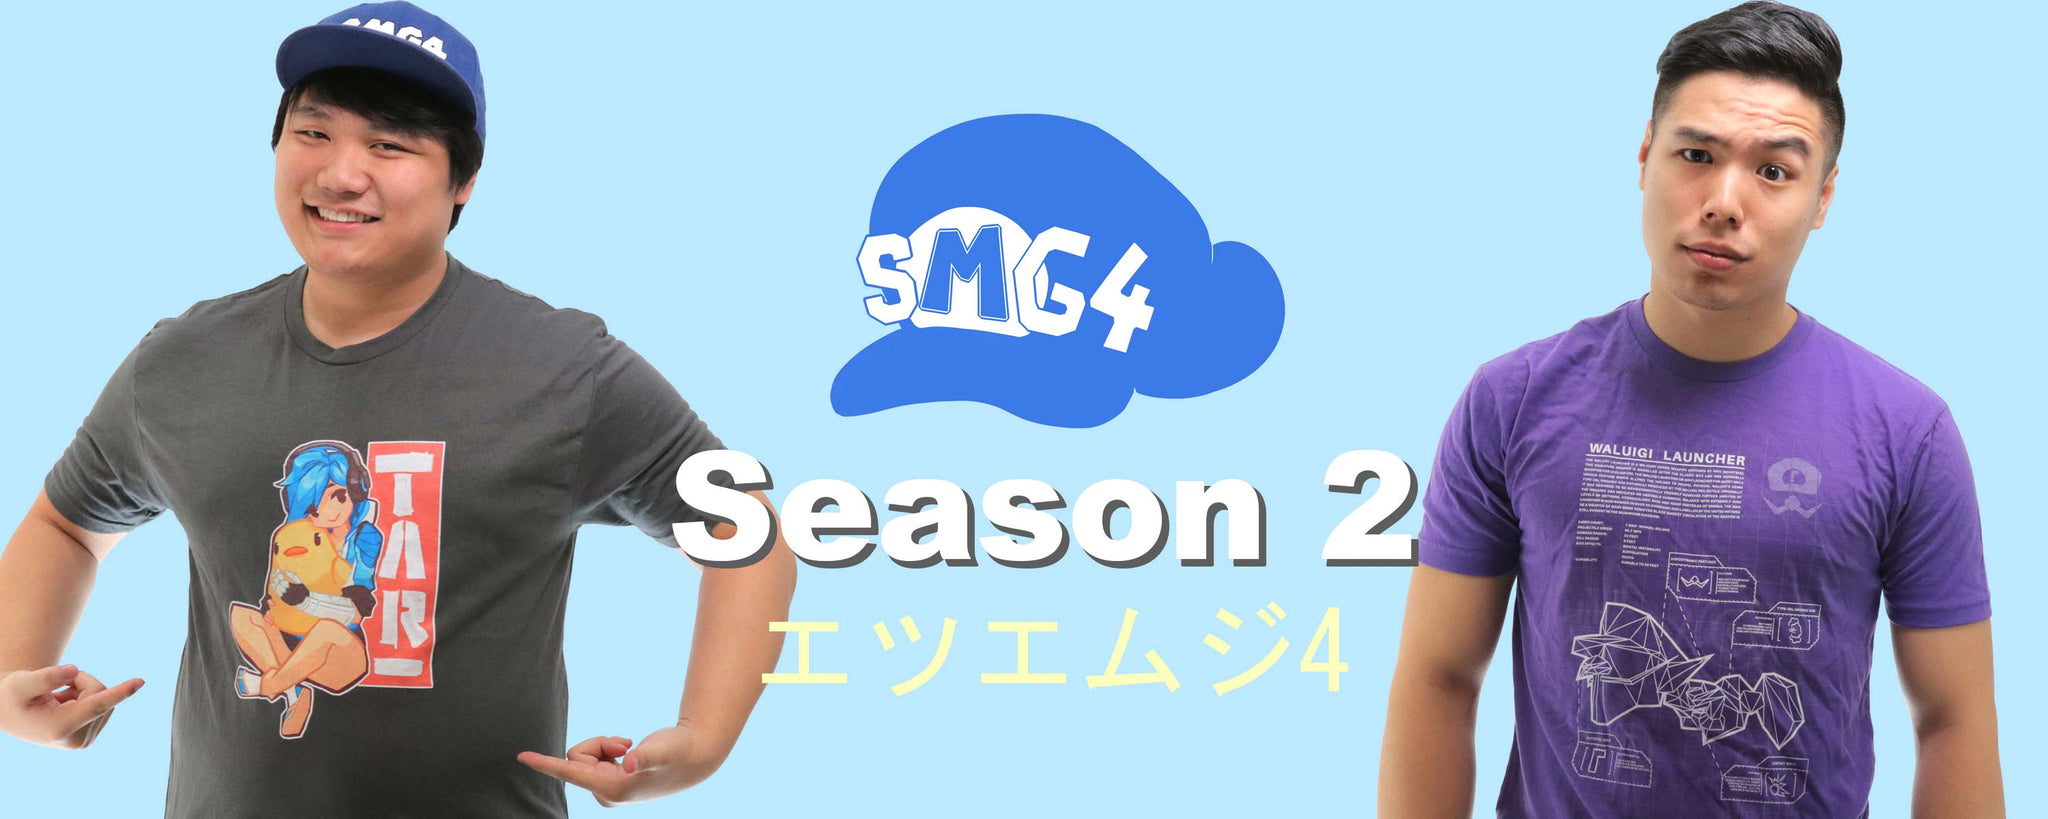 Official SMG4 Merch at Crowdmade